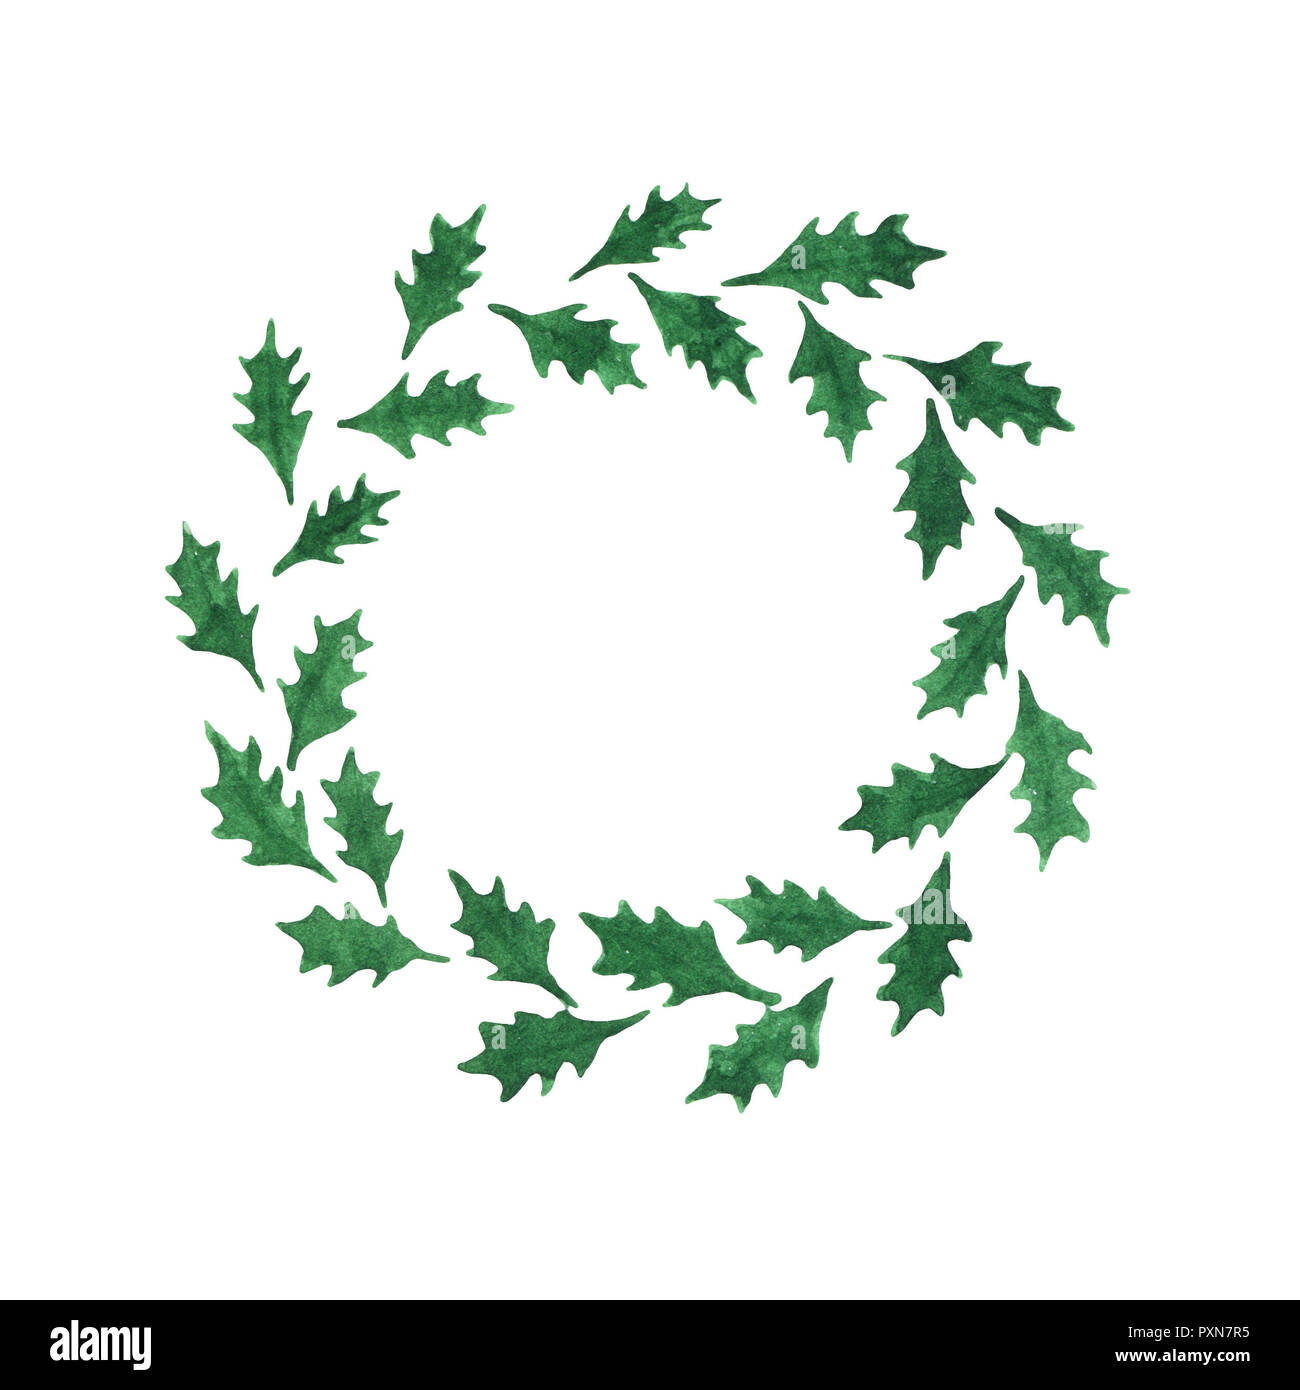 Abstract Watercolor Holly Leaves Wreath Isolated On The White Background Template For Christmas And New Year Designs Stock Photo Alamy